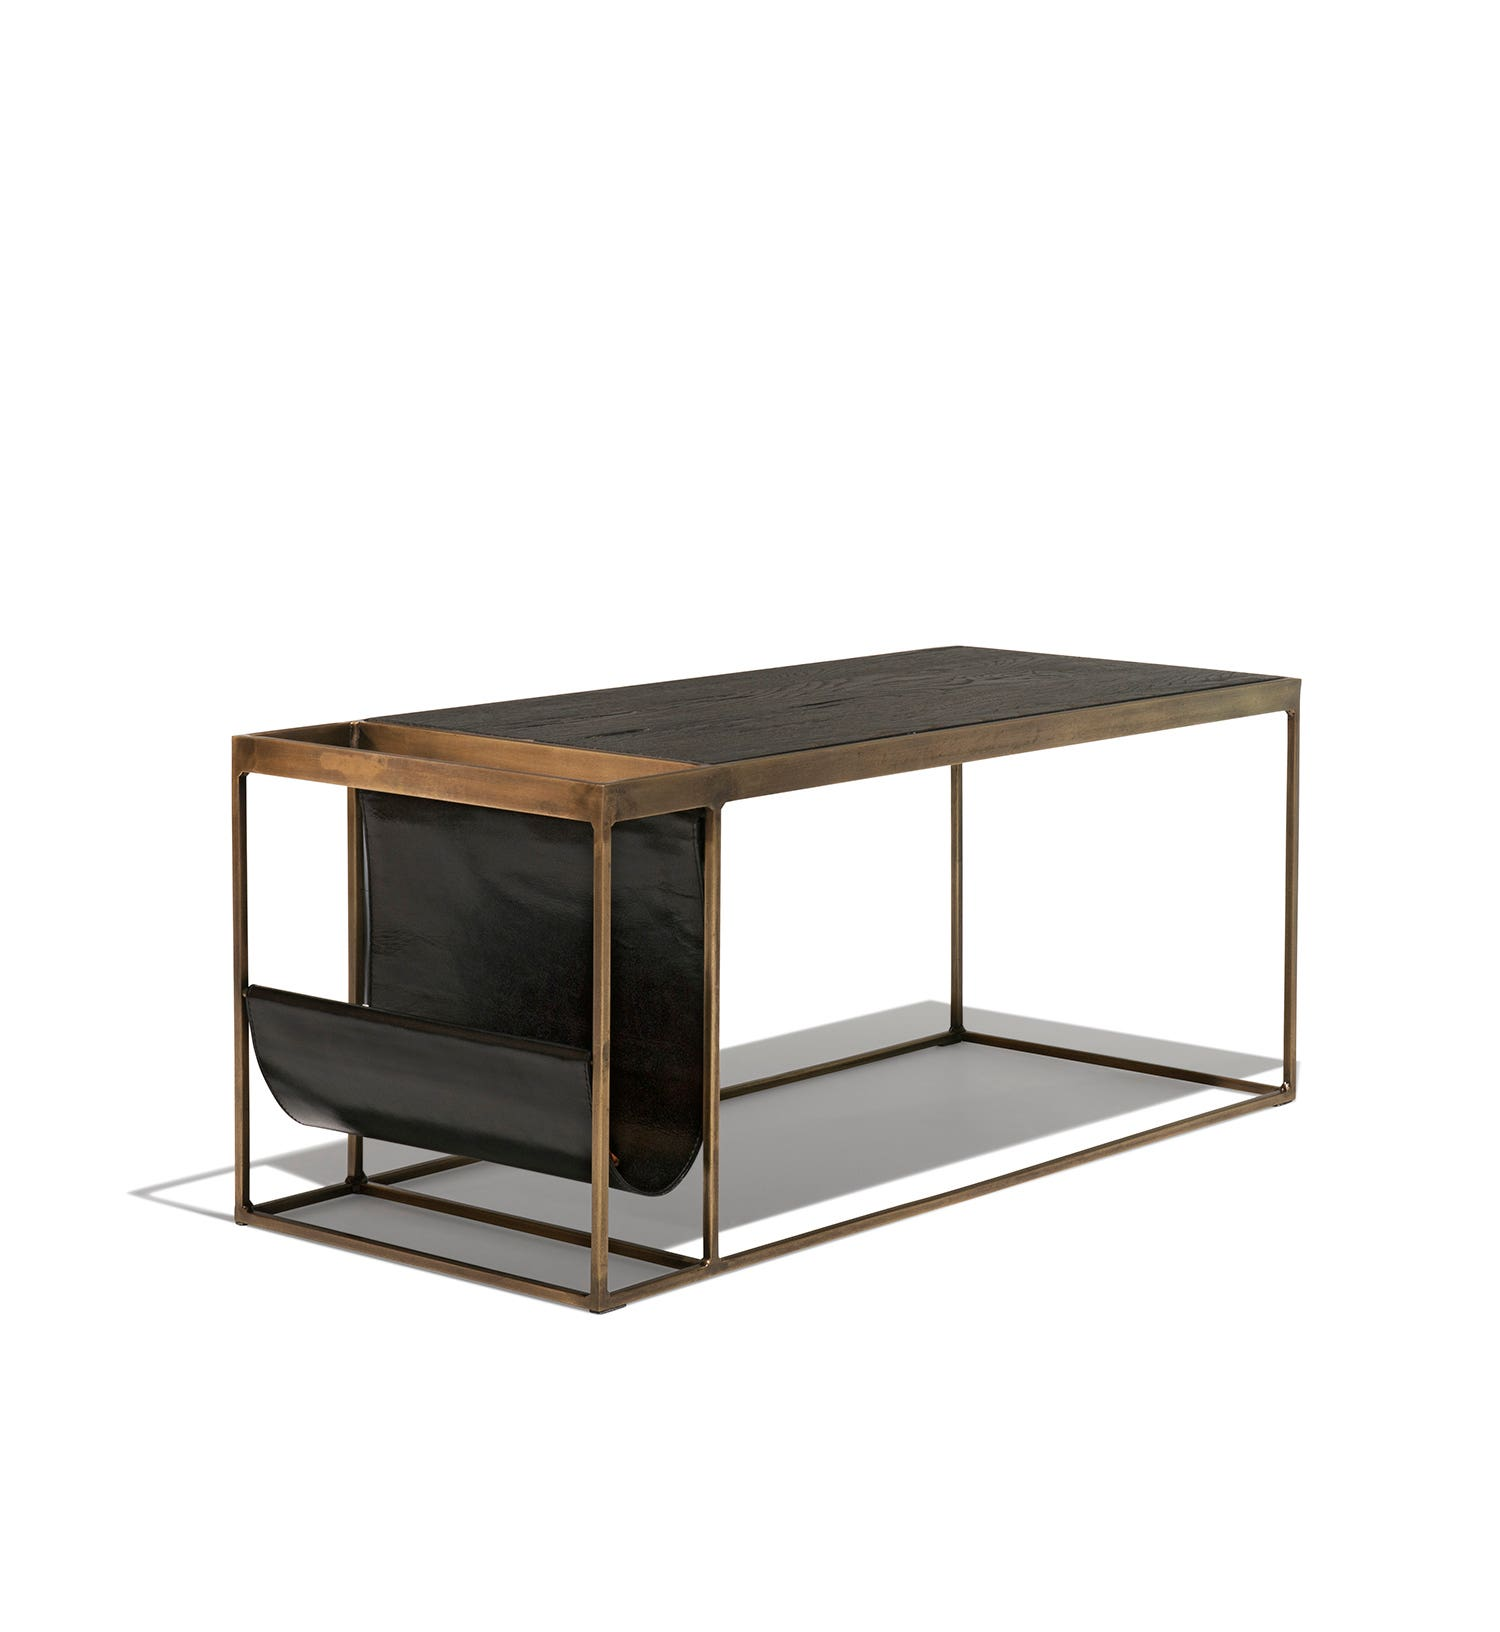 Catch coffee table small for Two small tables instead of coffee table